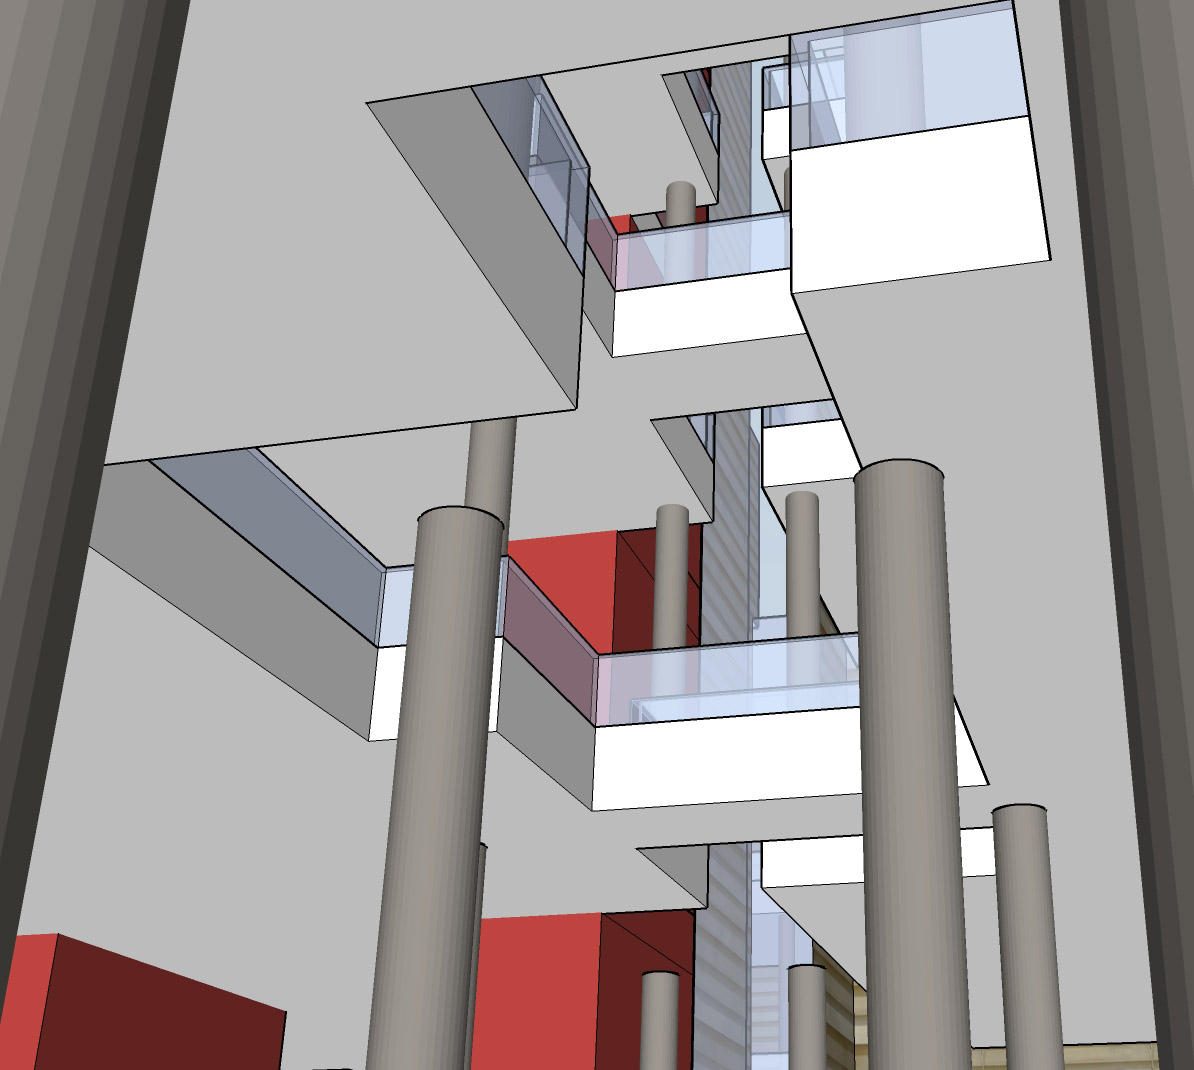 Computer rendering of library interior showing open views from floor to floor for the Irish library design competition.